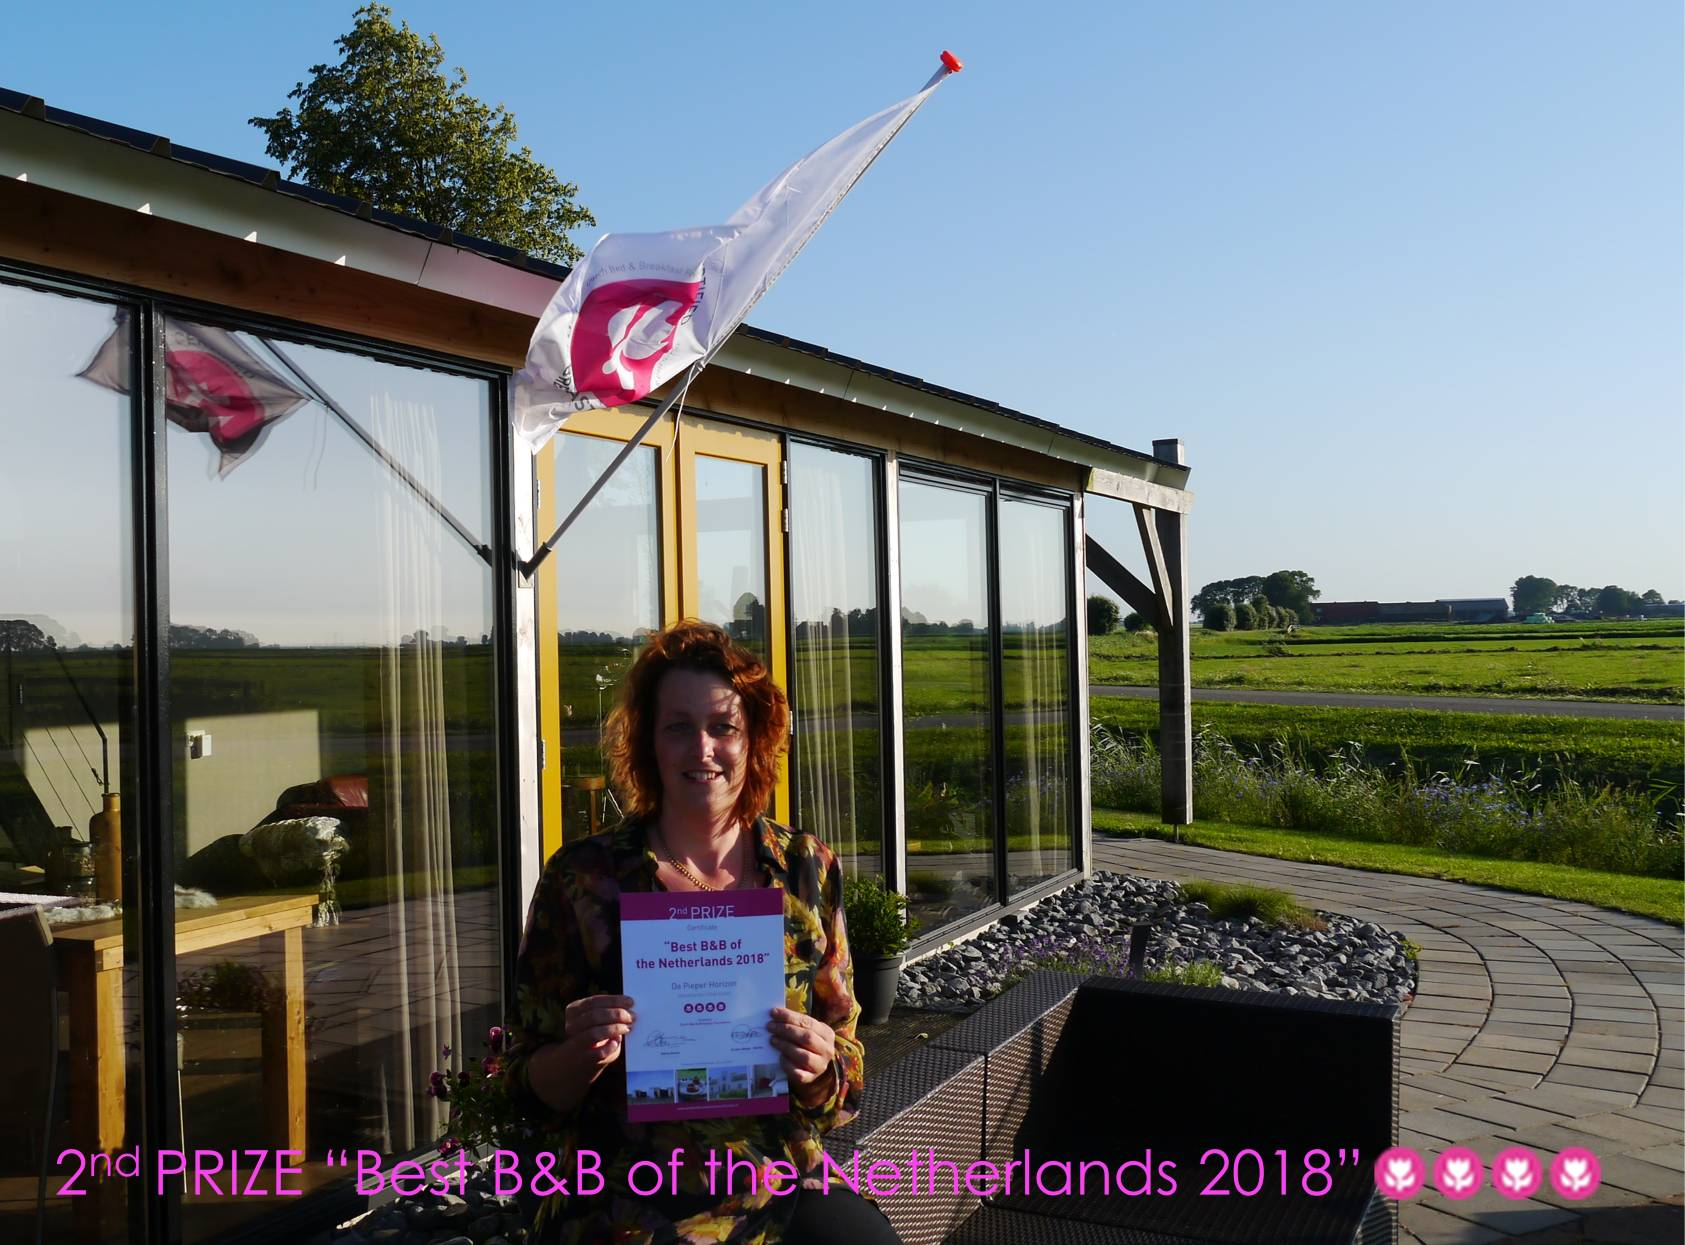 Second Price of best B&B of te Netherlands 2018, 2019 en 2020